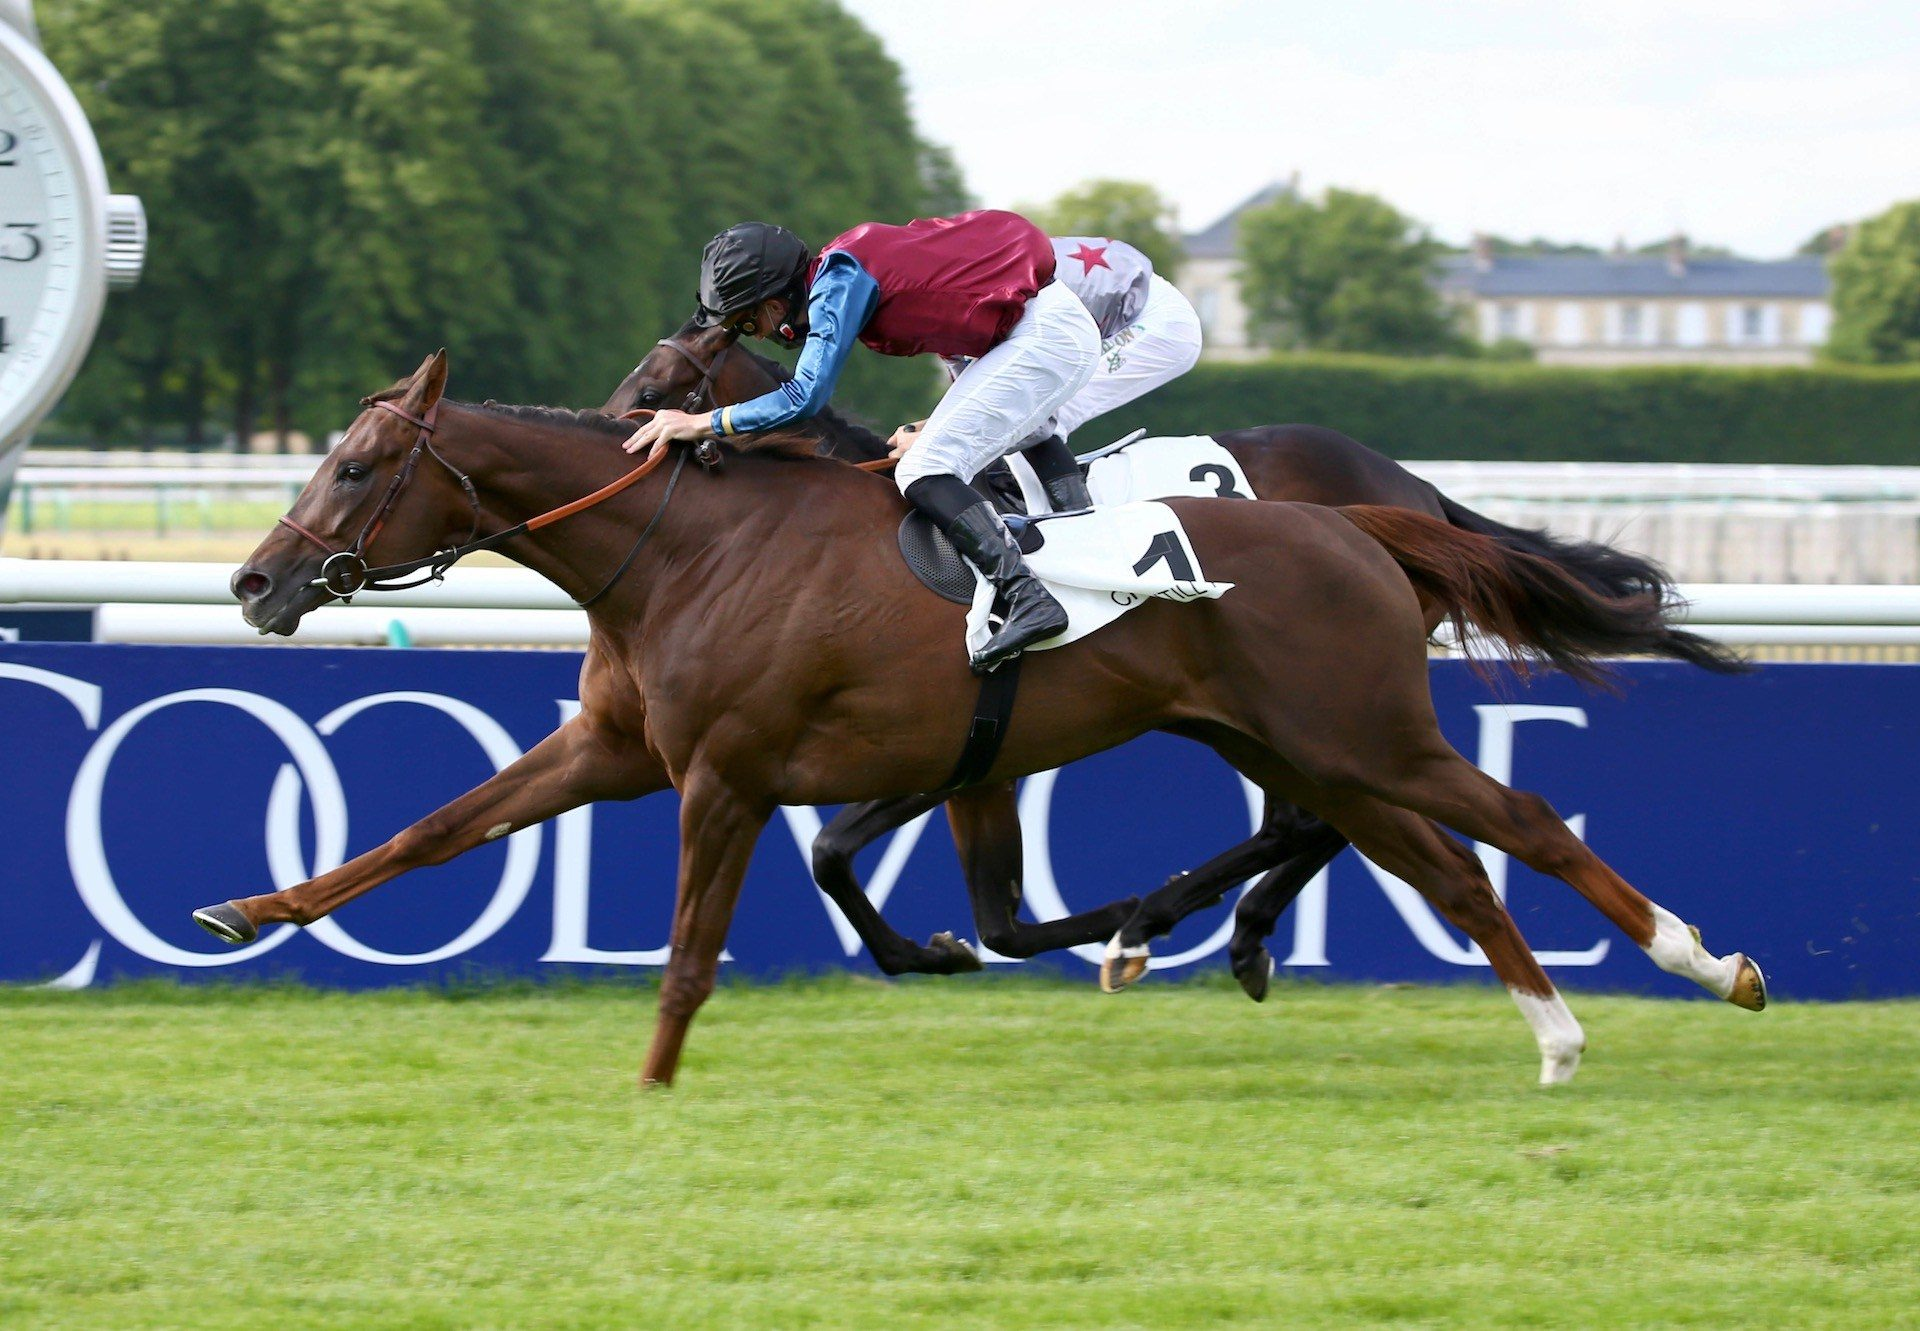 Mare Australis (Australia) Wins Listed Race at Chantilly